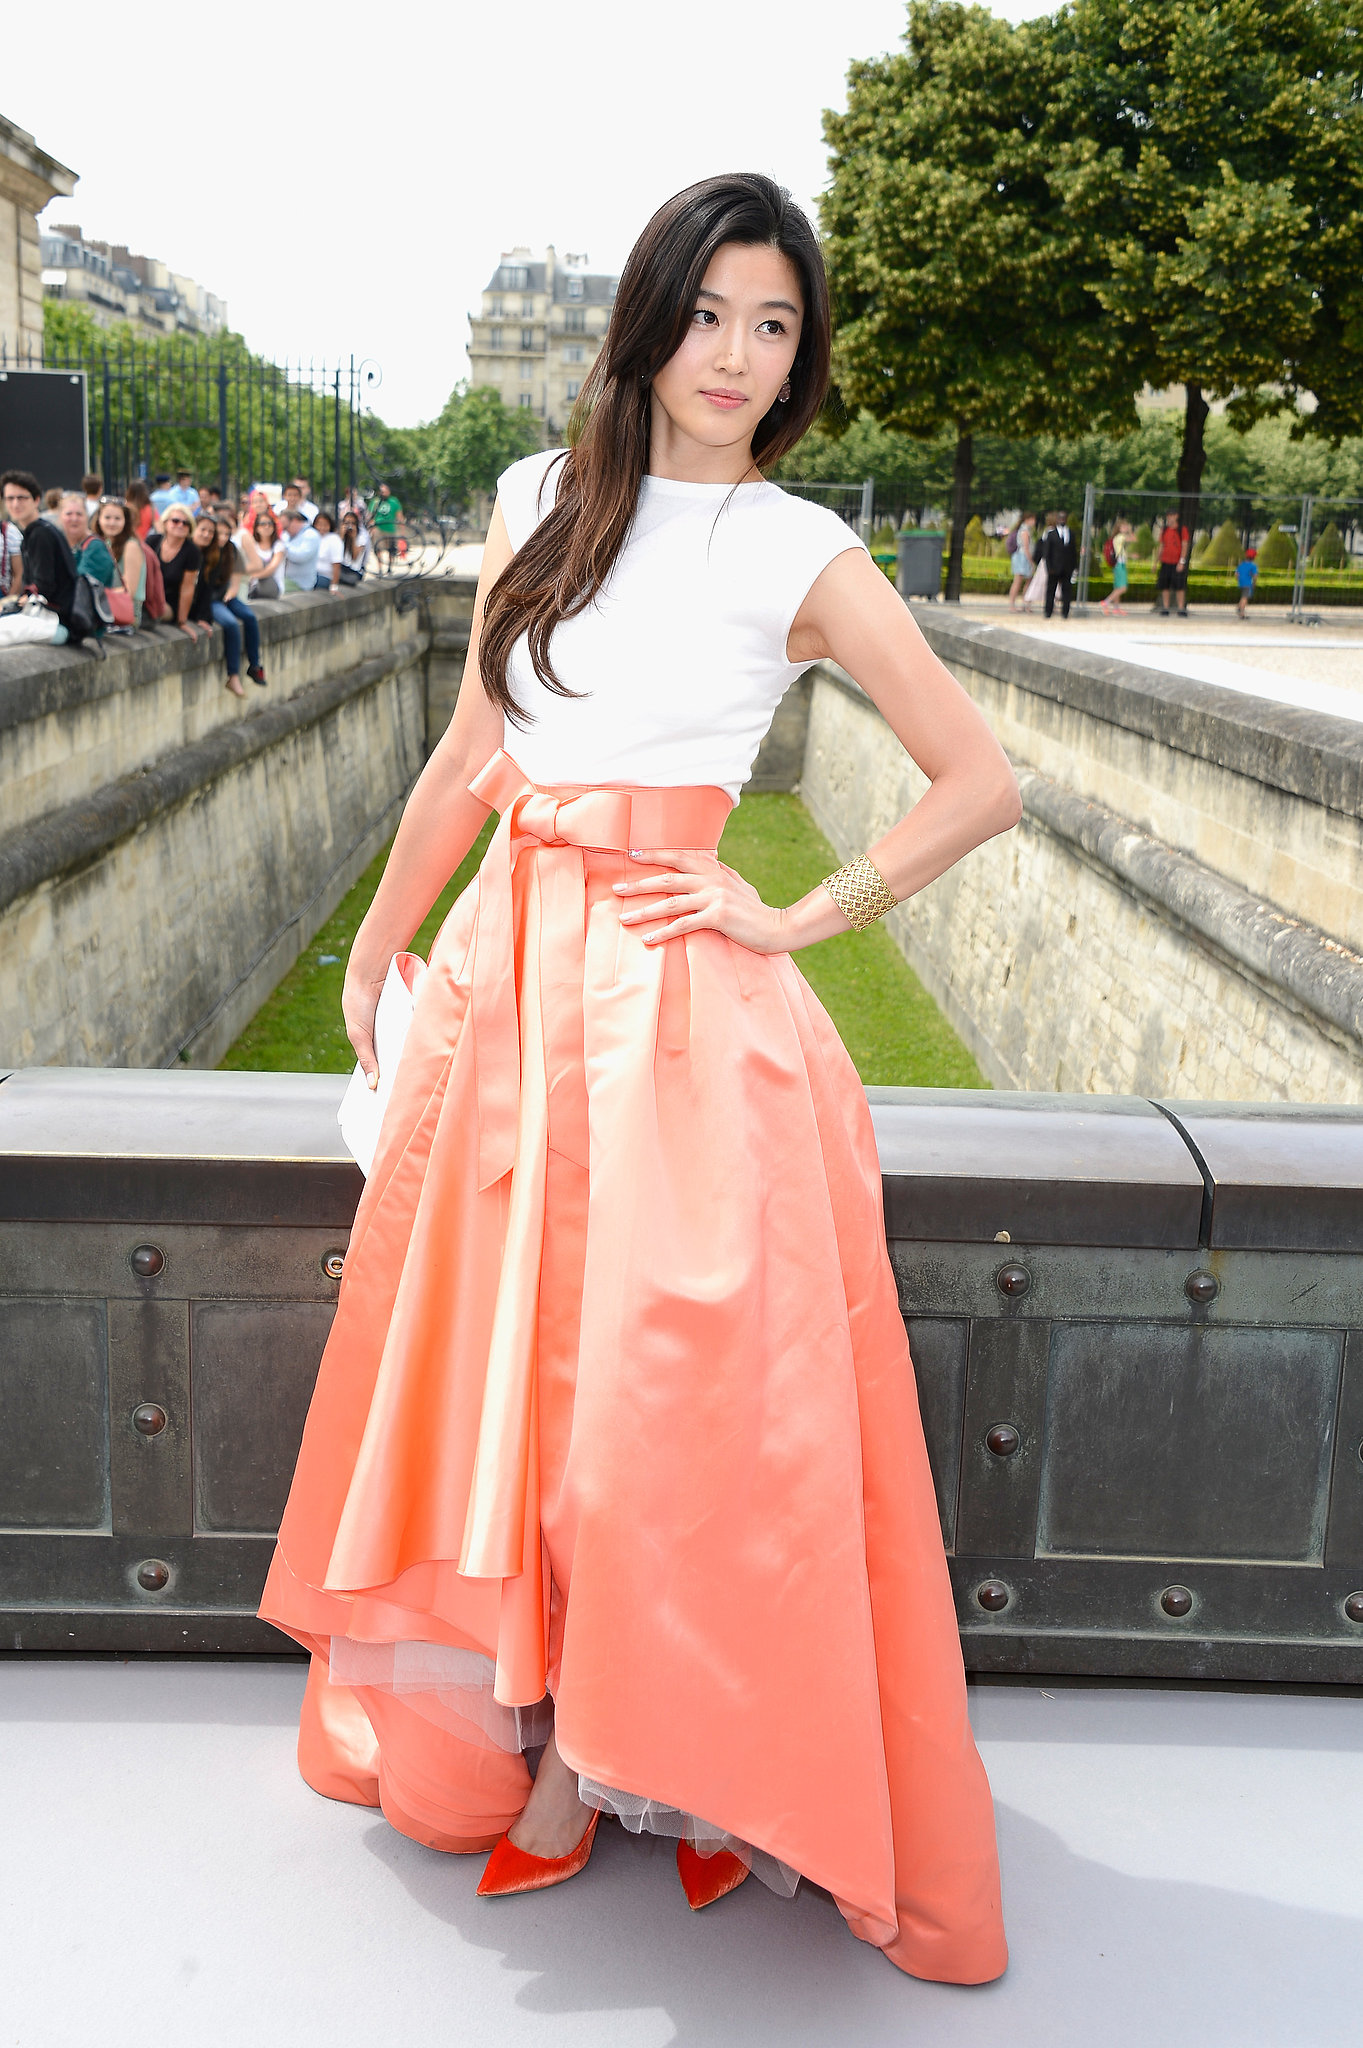 The more formal feel of couture collections means an attendee who's often suitably attired. While a little too much f